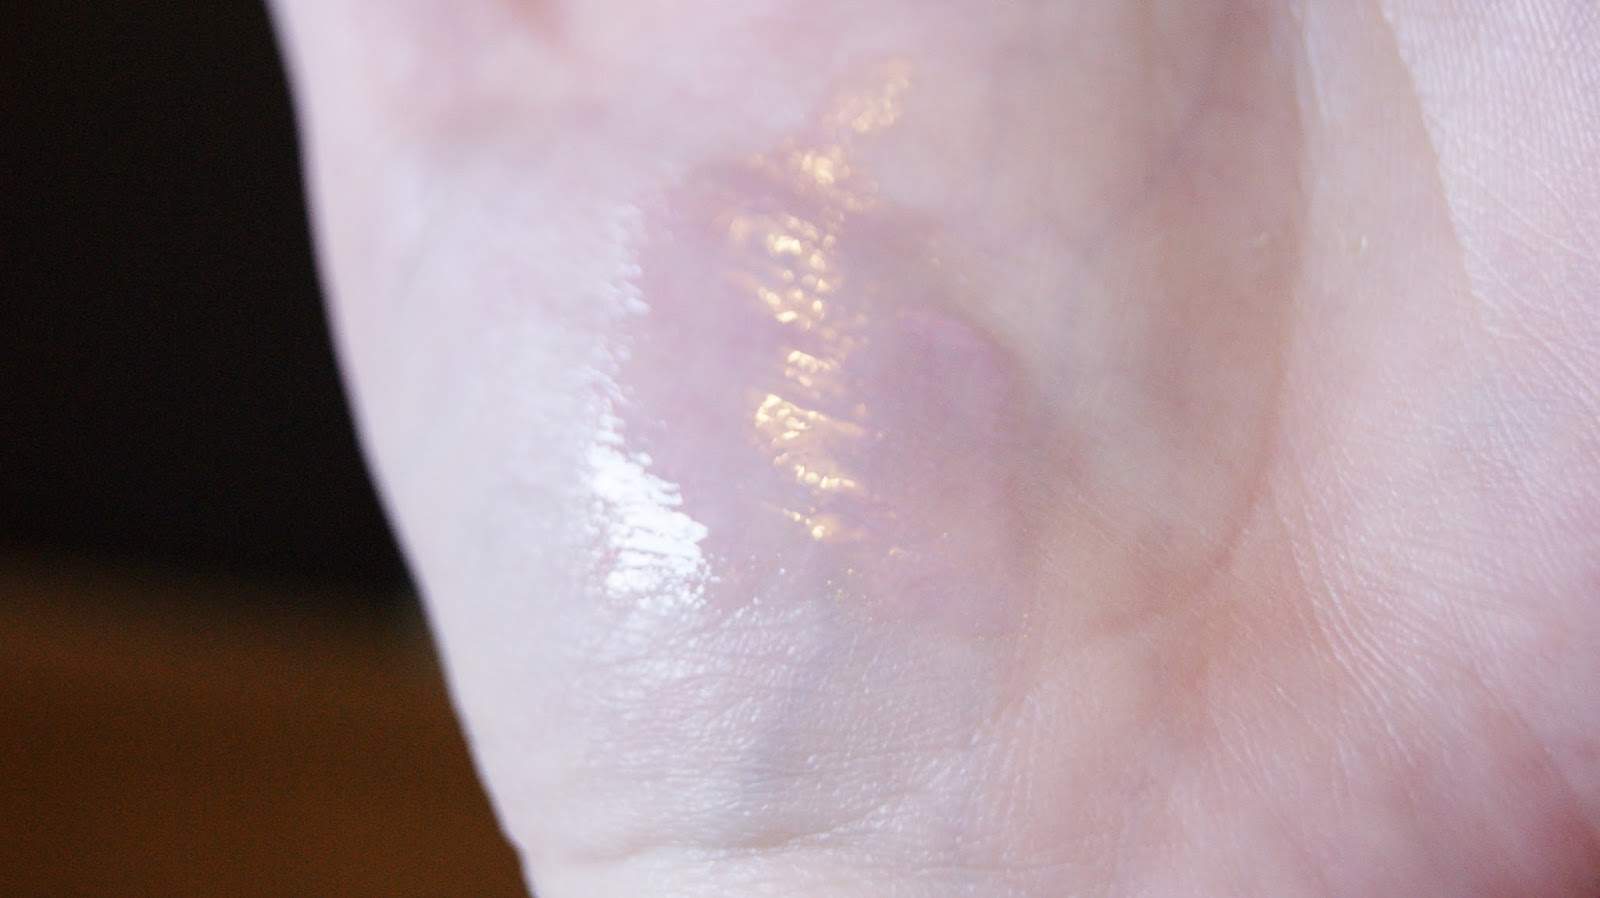 Bare Minerals Marvelous Moxie Lipgloss in Hypnotist Swatch